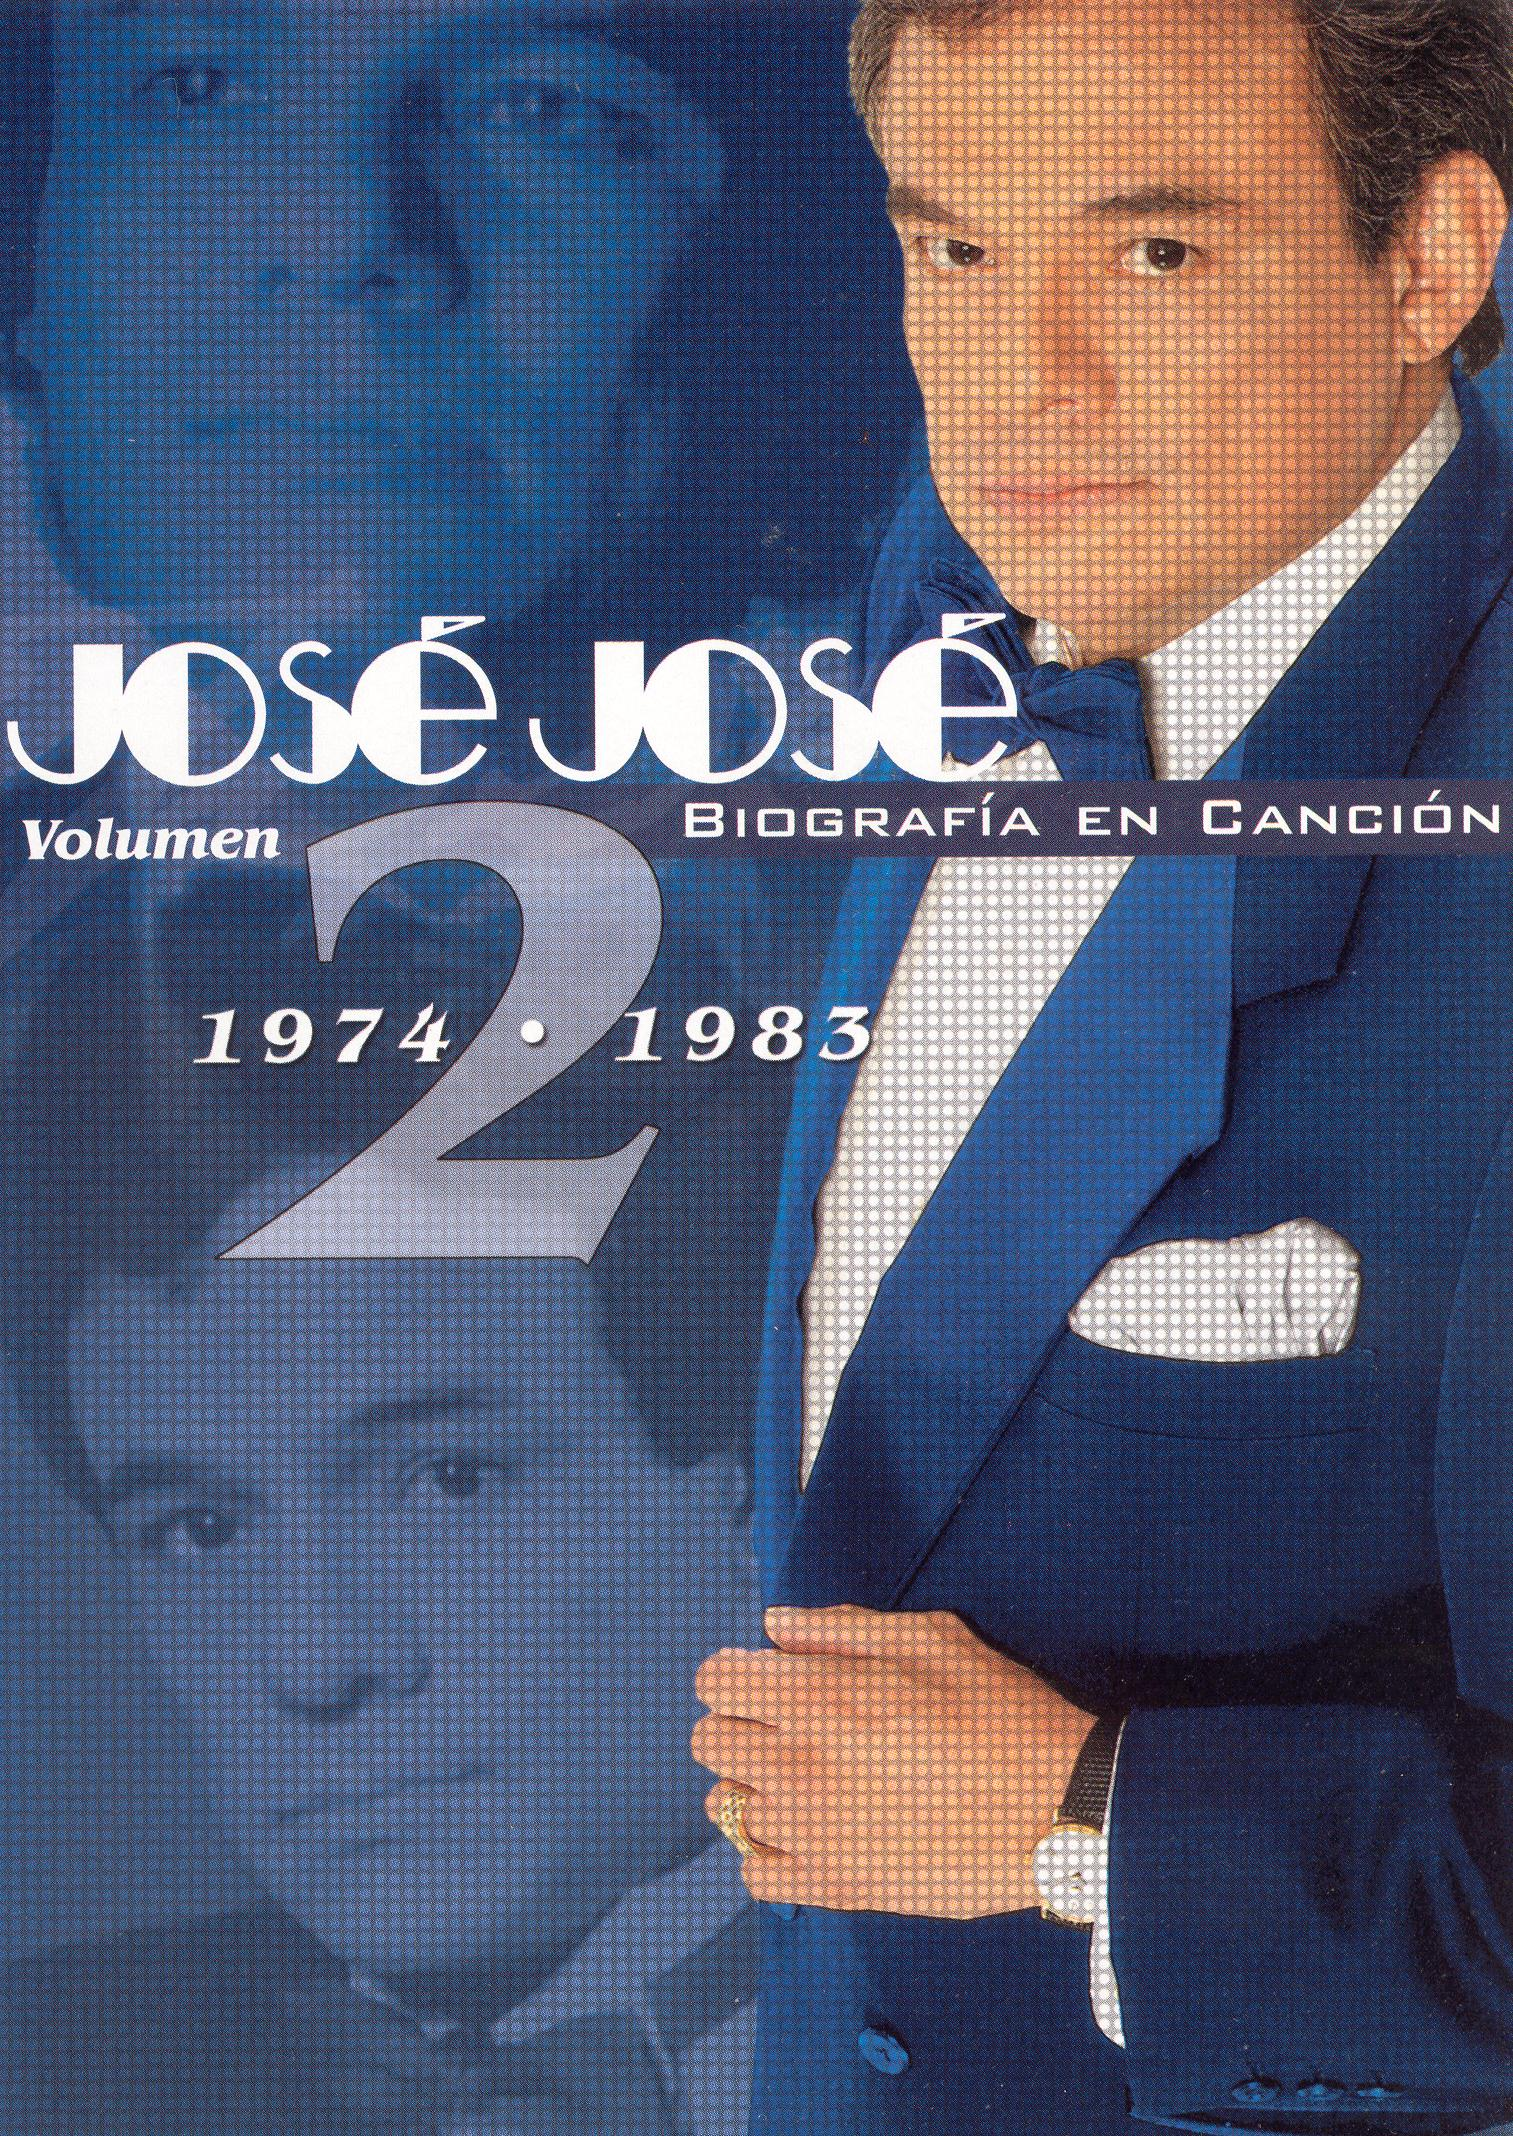 José José: Biografia En Cancion, Vol. 2